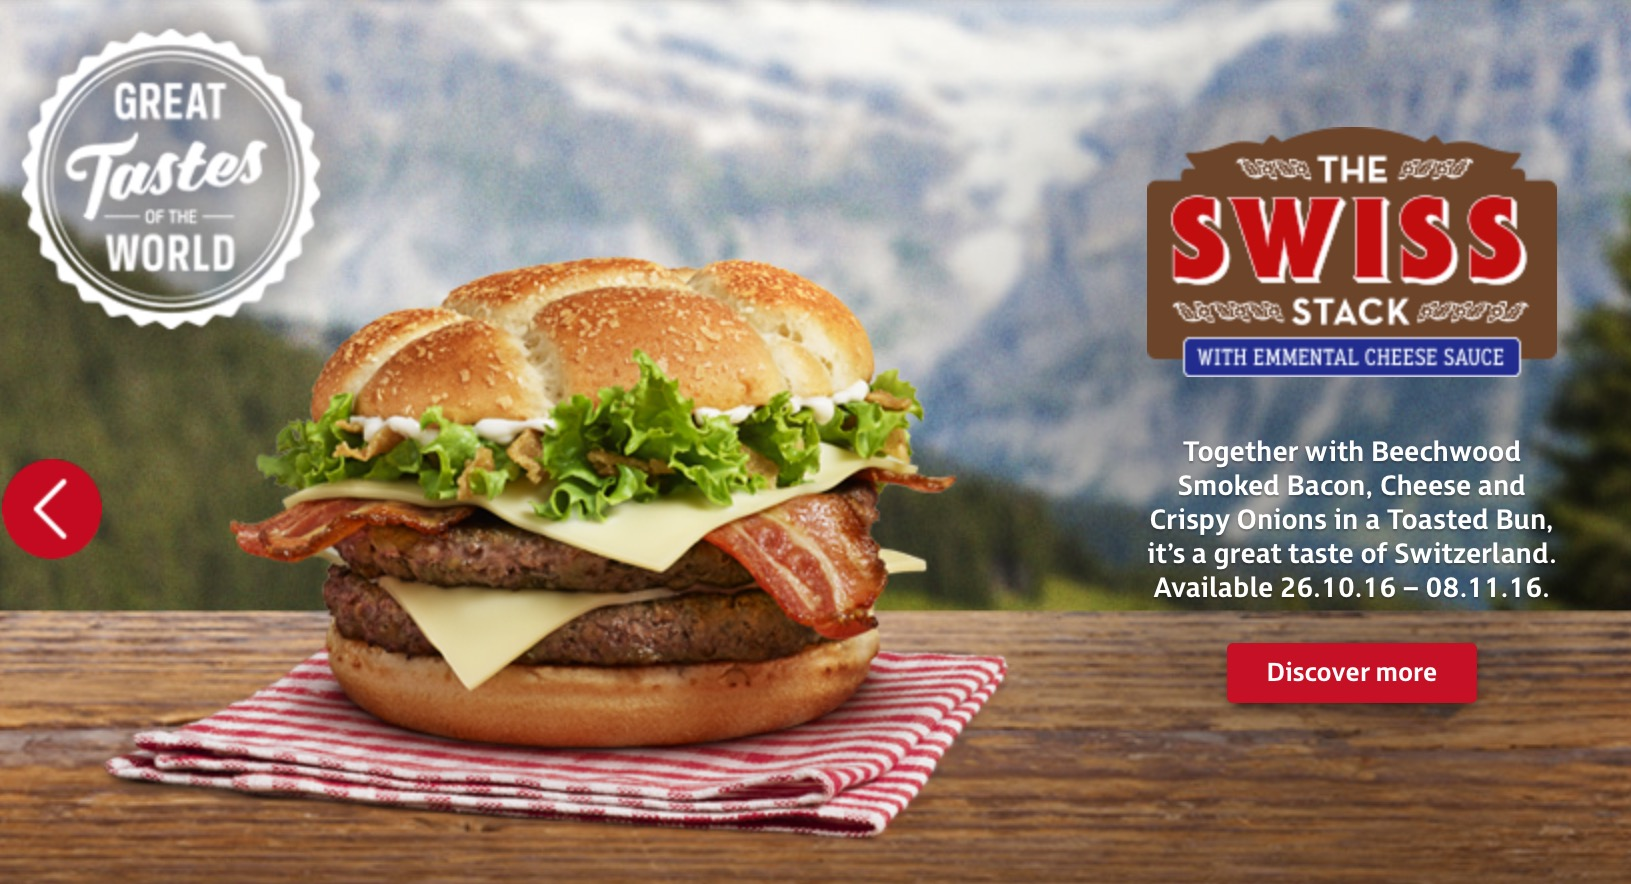 The Swiss Stack